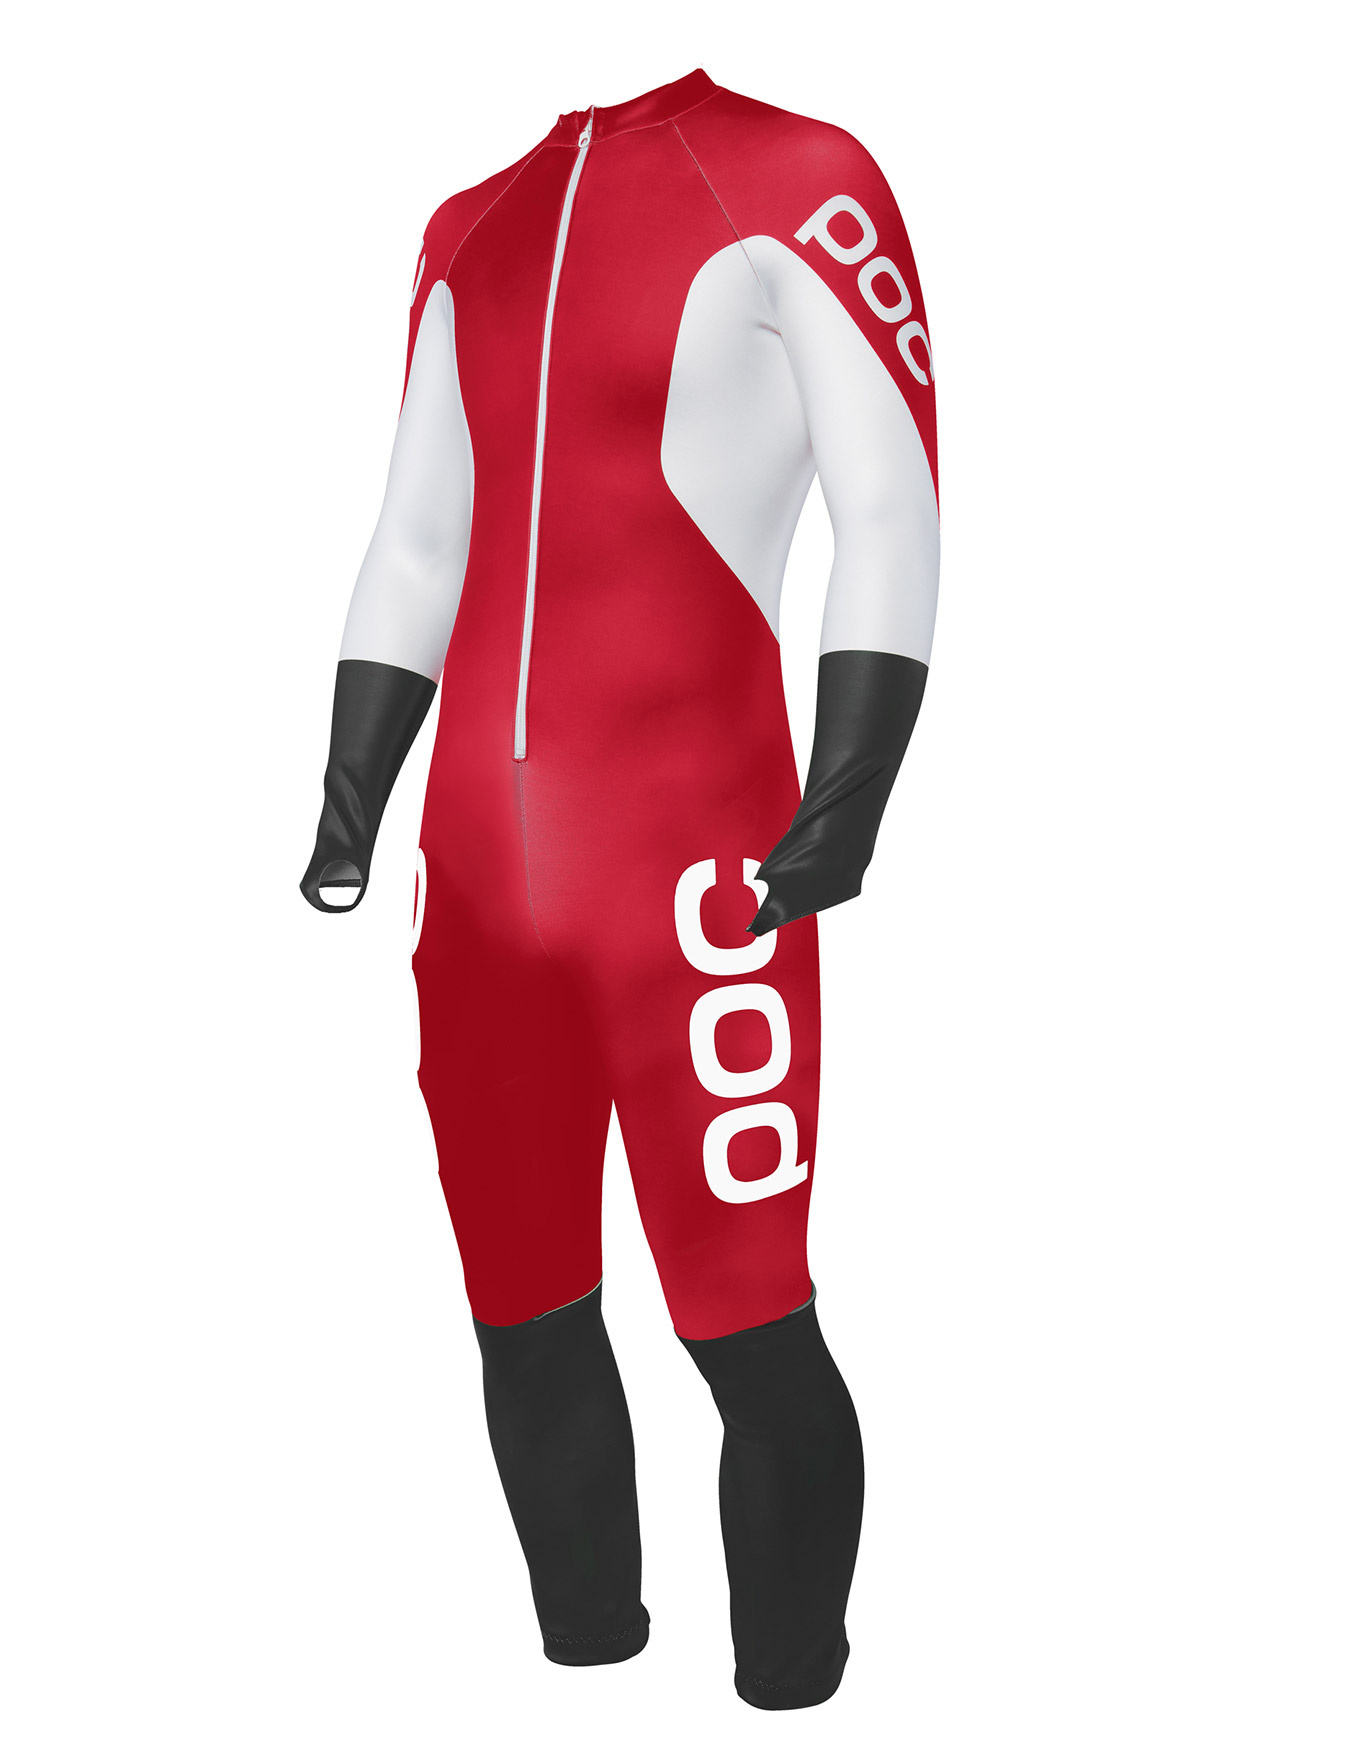 POC Skin GS JR Race Suit 160